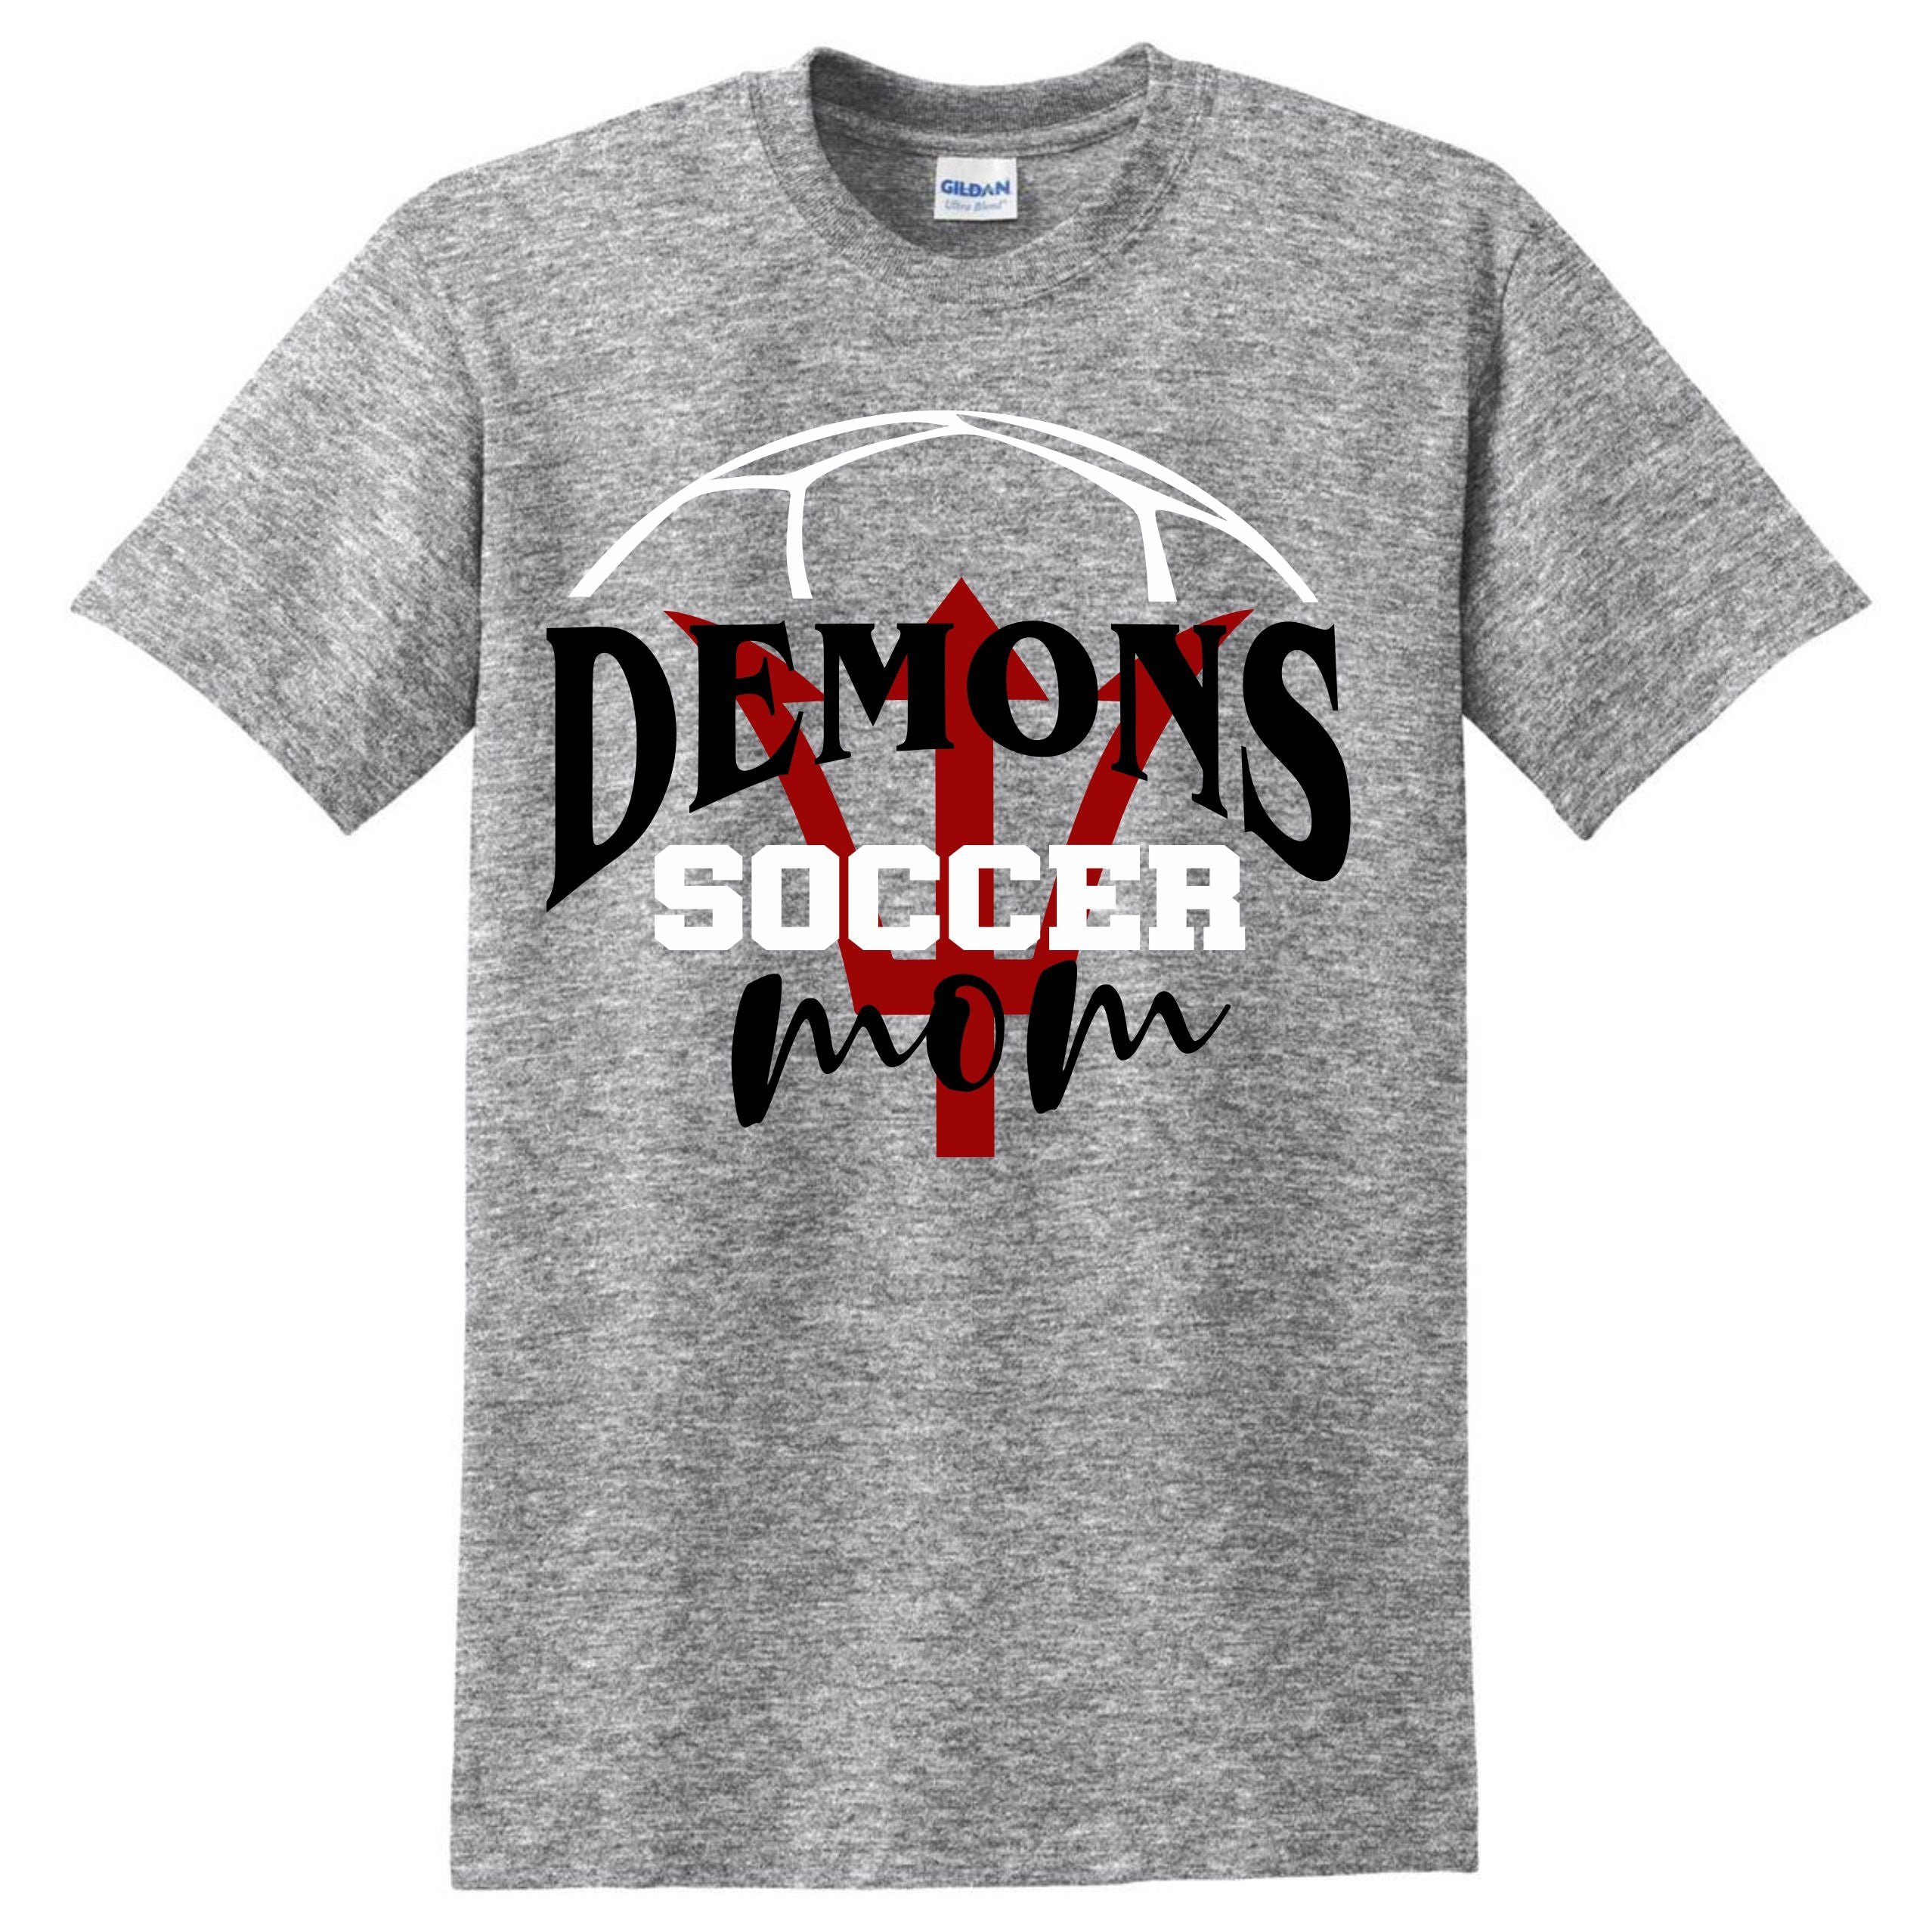 soccer team shirt, soccer mom fan shirt